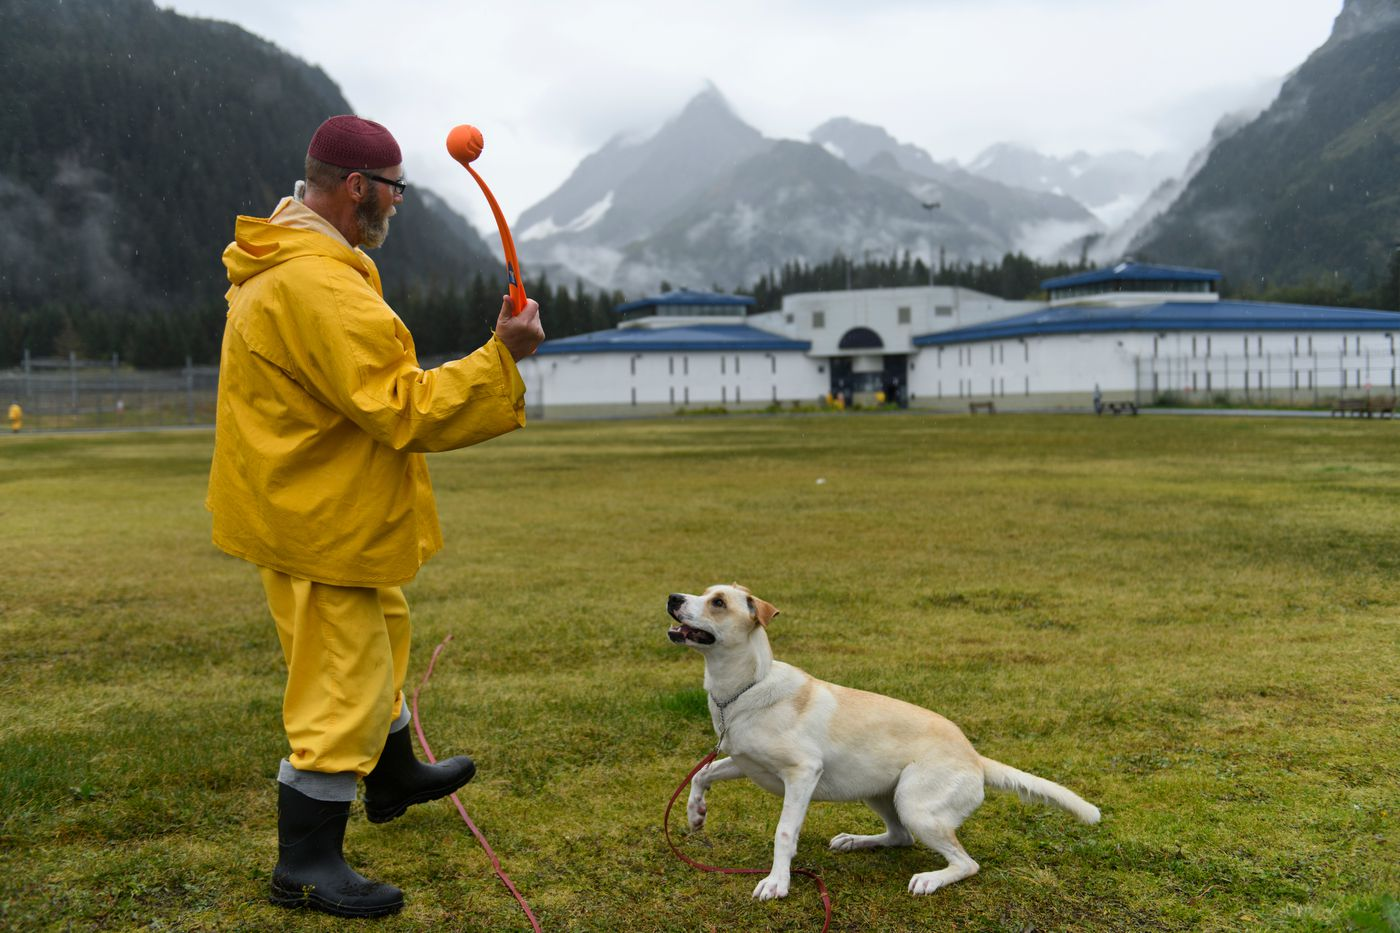 John Blalock works on obedience training with a dog named Sura in the Spring Creek prison yard on Sept. 27, 2018. The prison's Shelter Pet Obedience Training (SPOT) program helps prepare dogs for adoption. (Marc Lester / ADN)